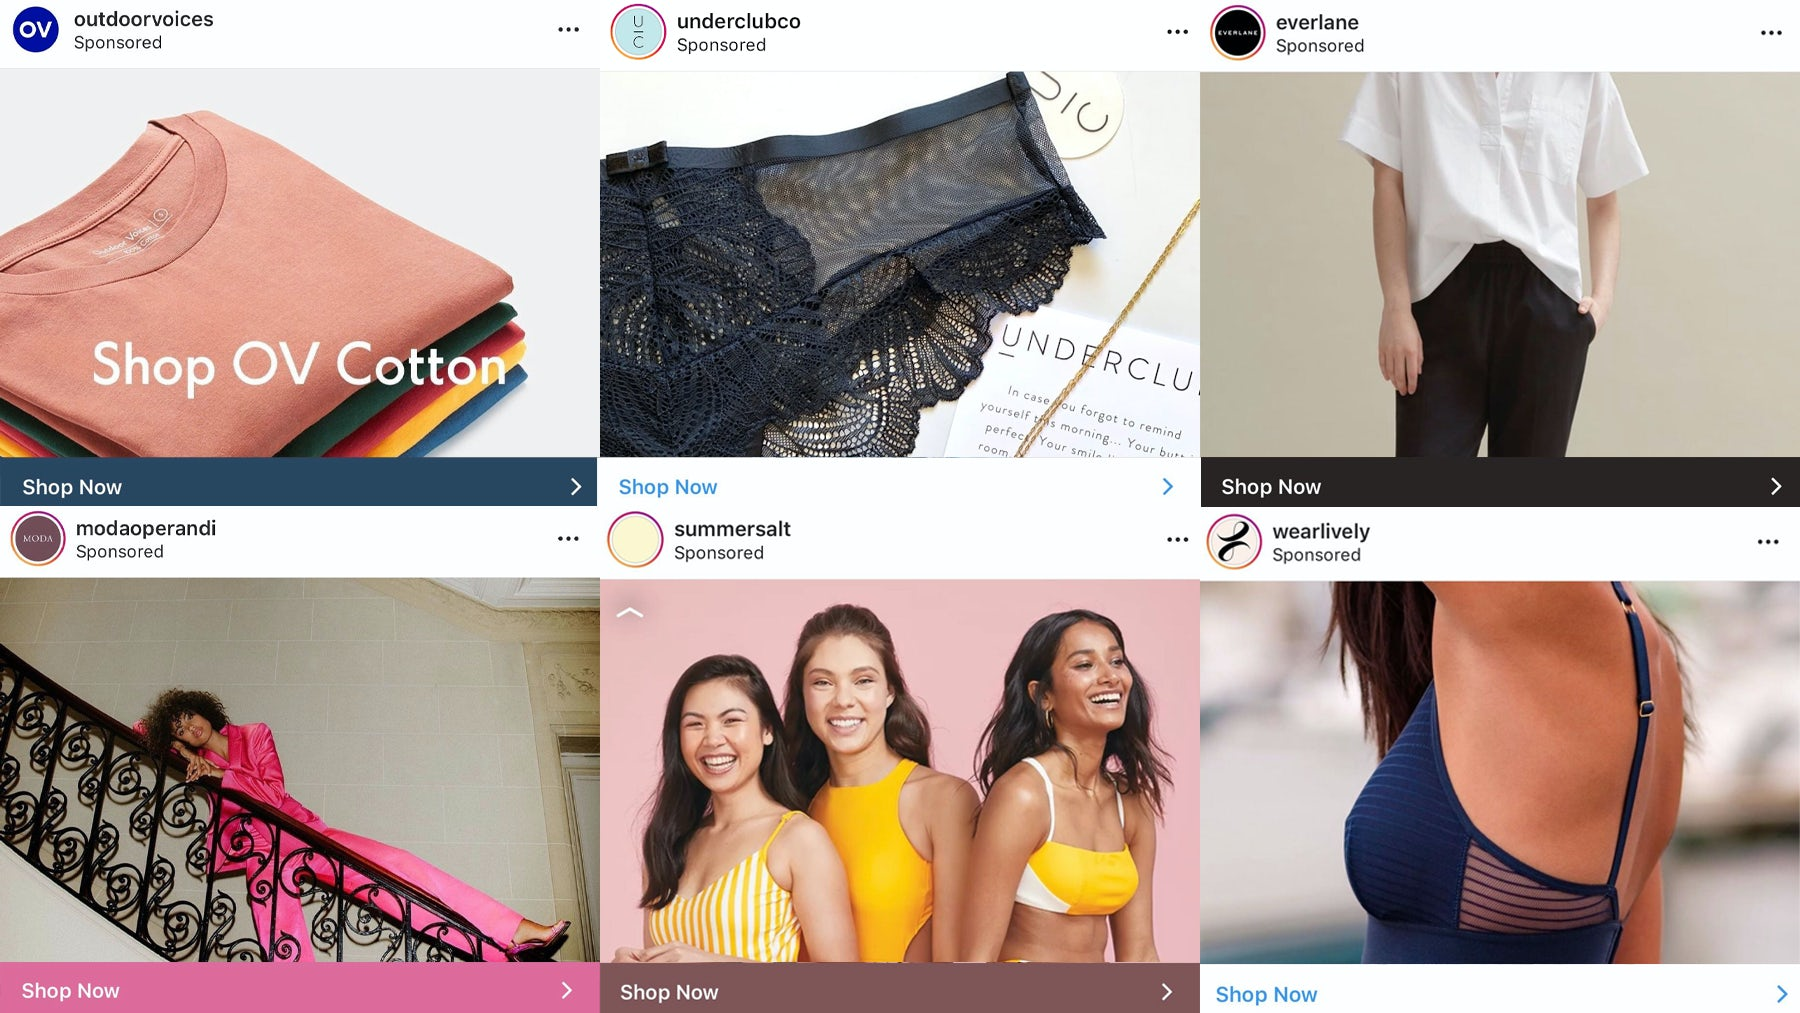 The Golden Age of Instagram Marketing Is Over